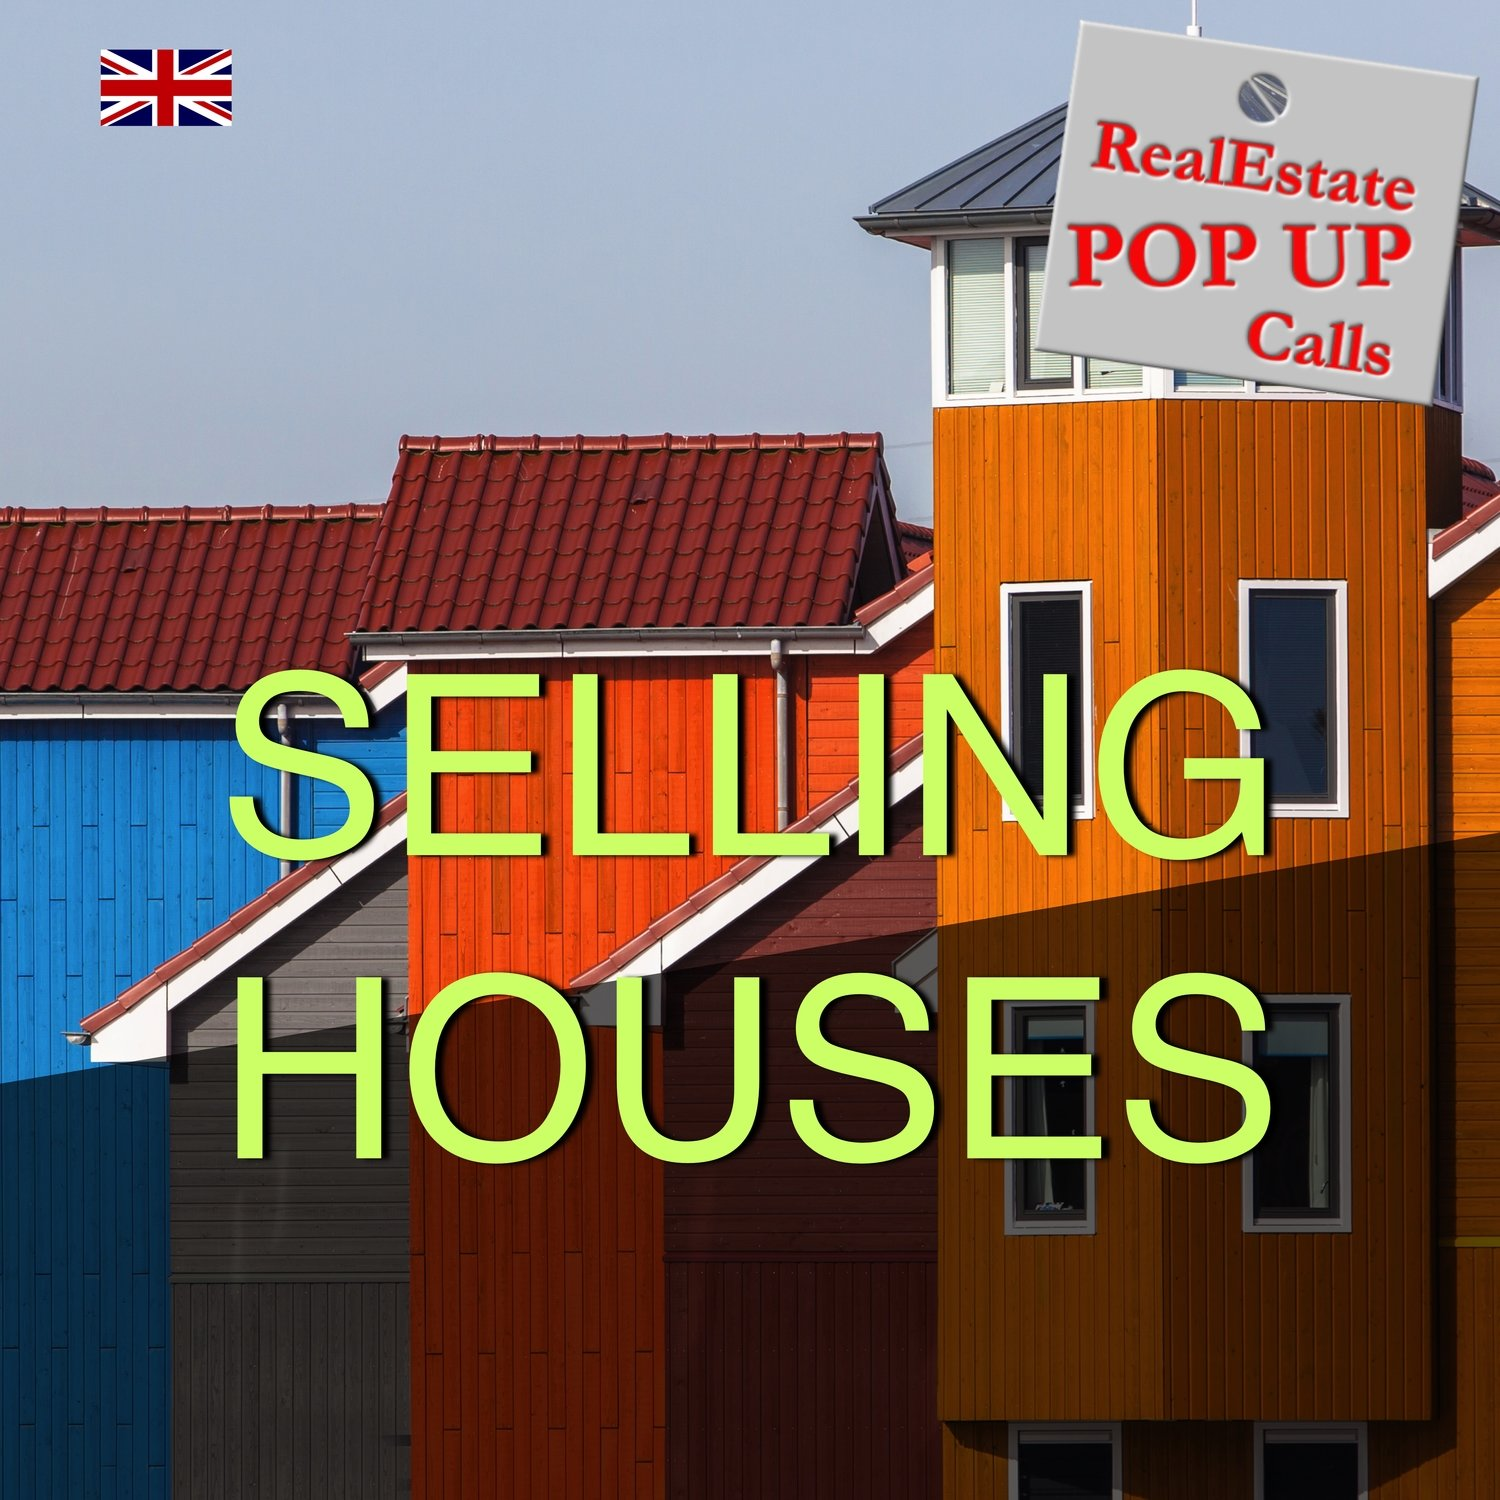 RealEstate POP UP Call - SELLING HOUSES - English